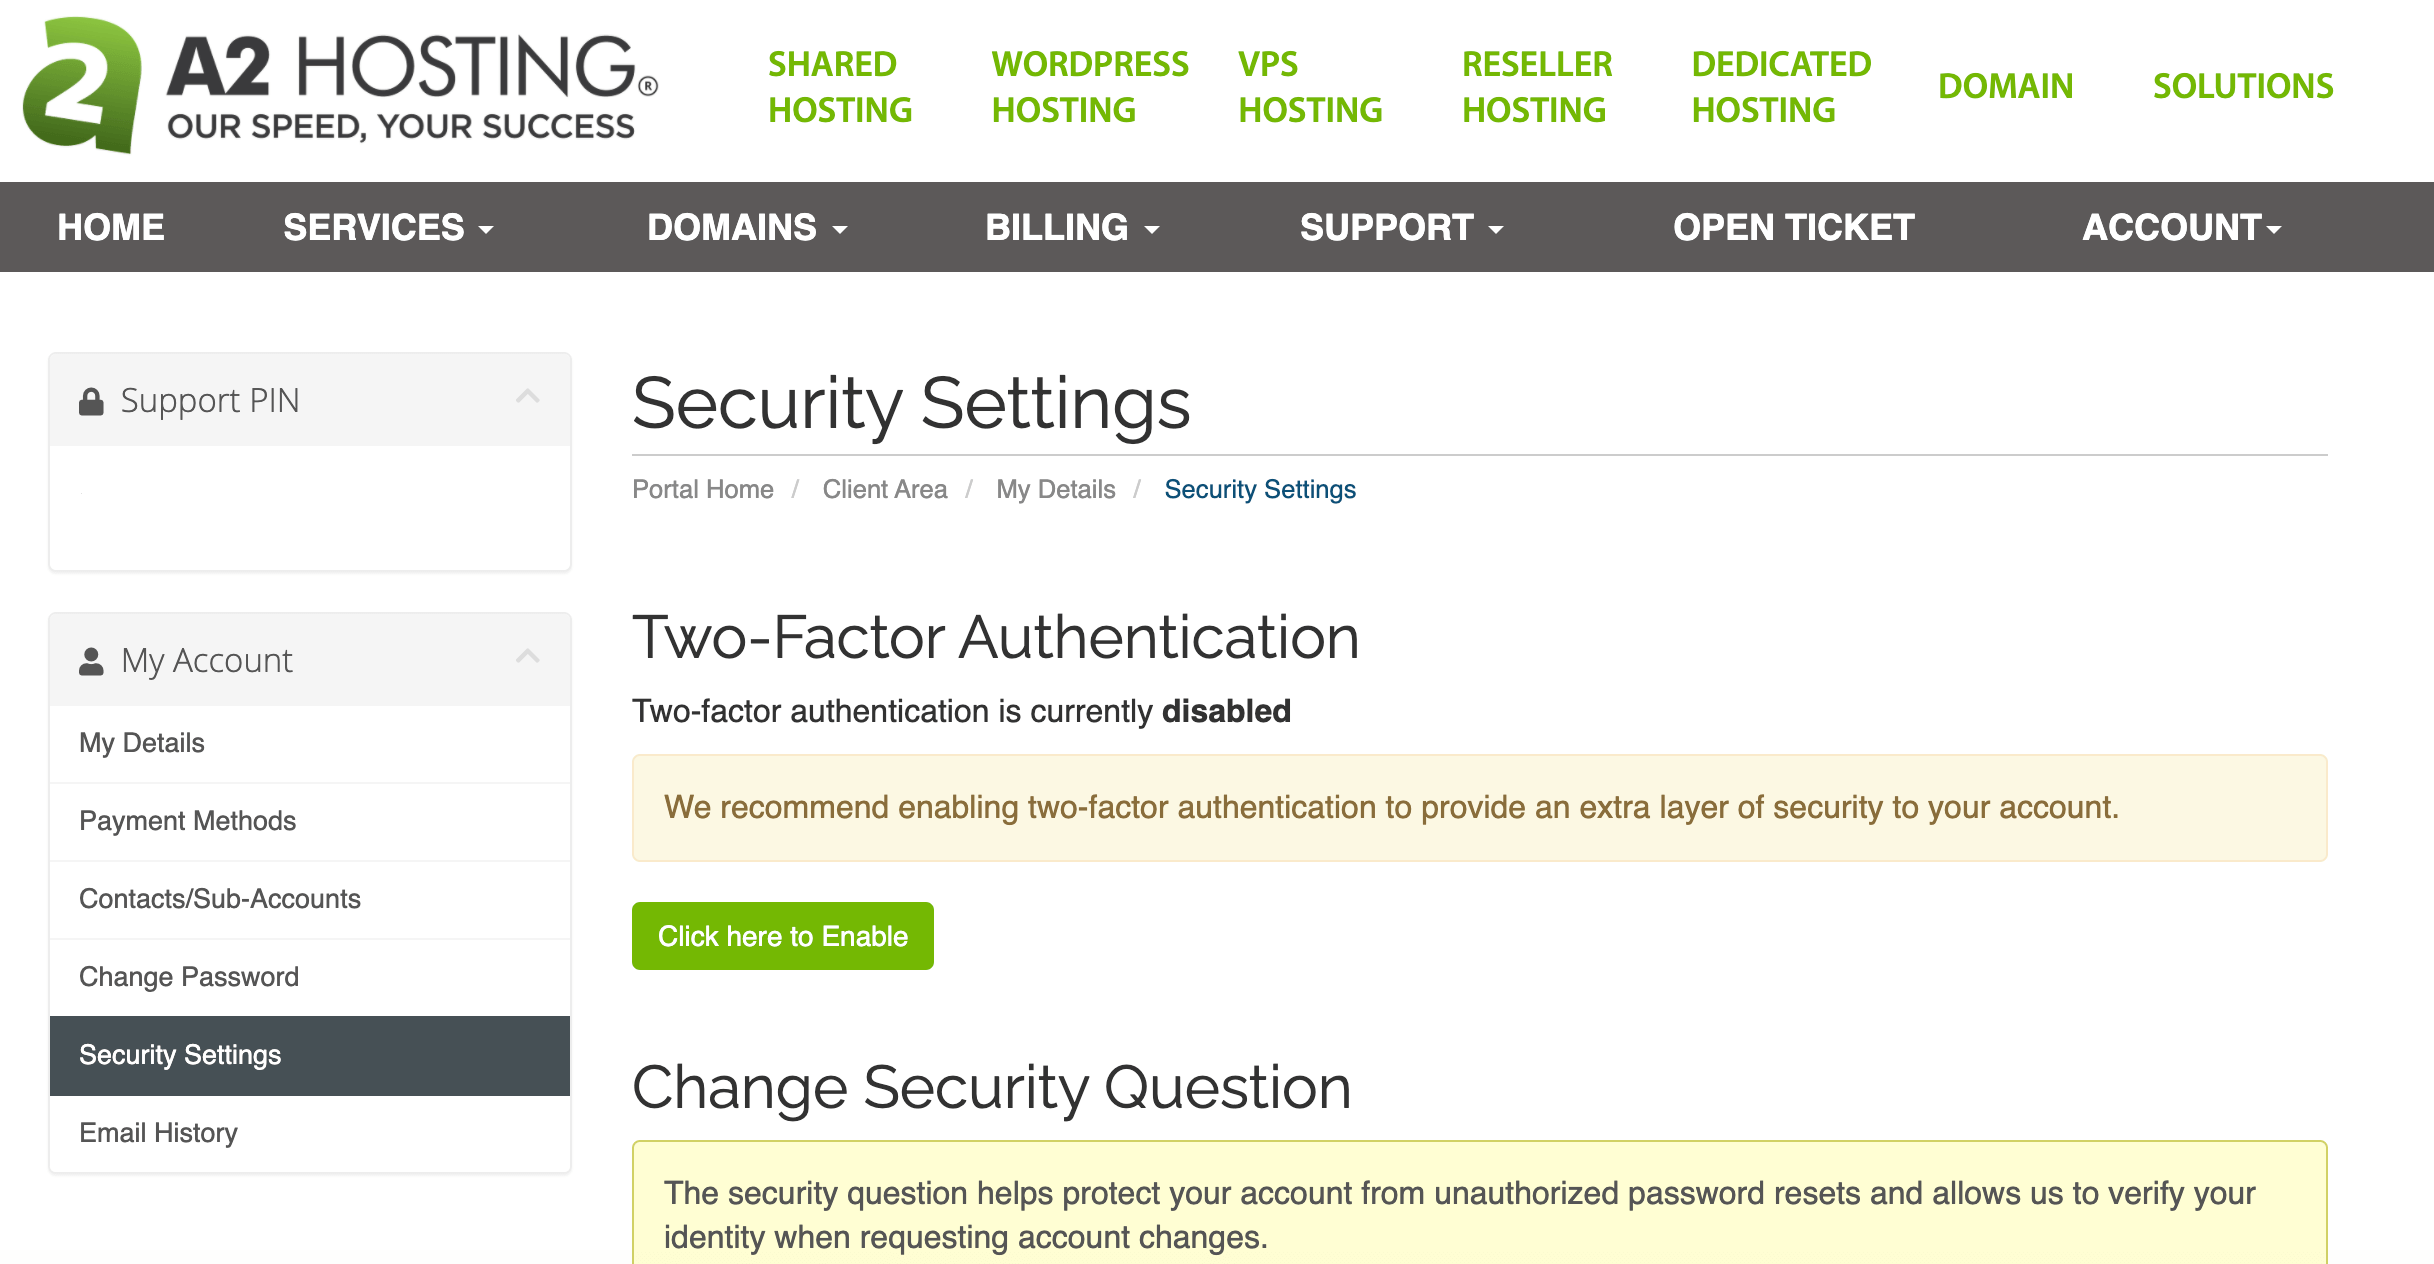 A2 Hosting's Two-Factor Authentication settings.